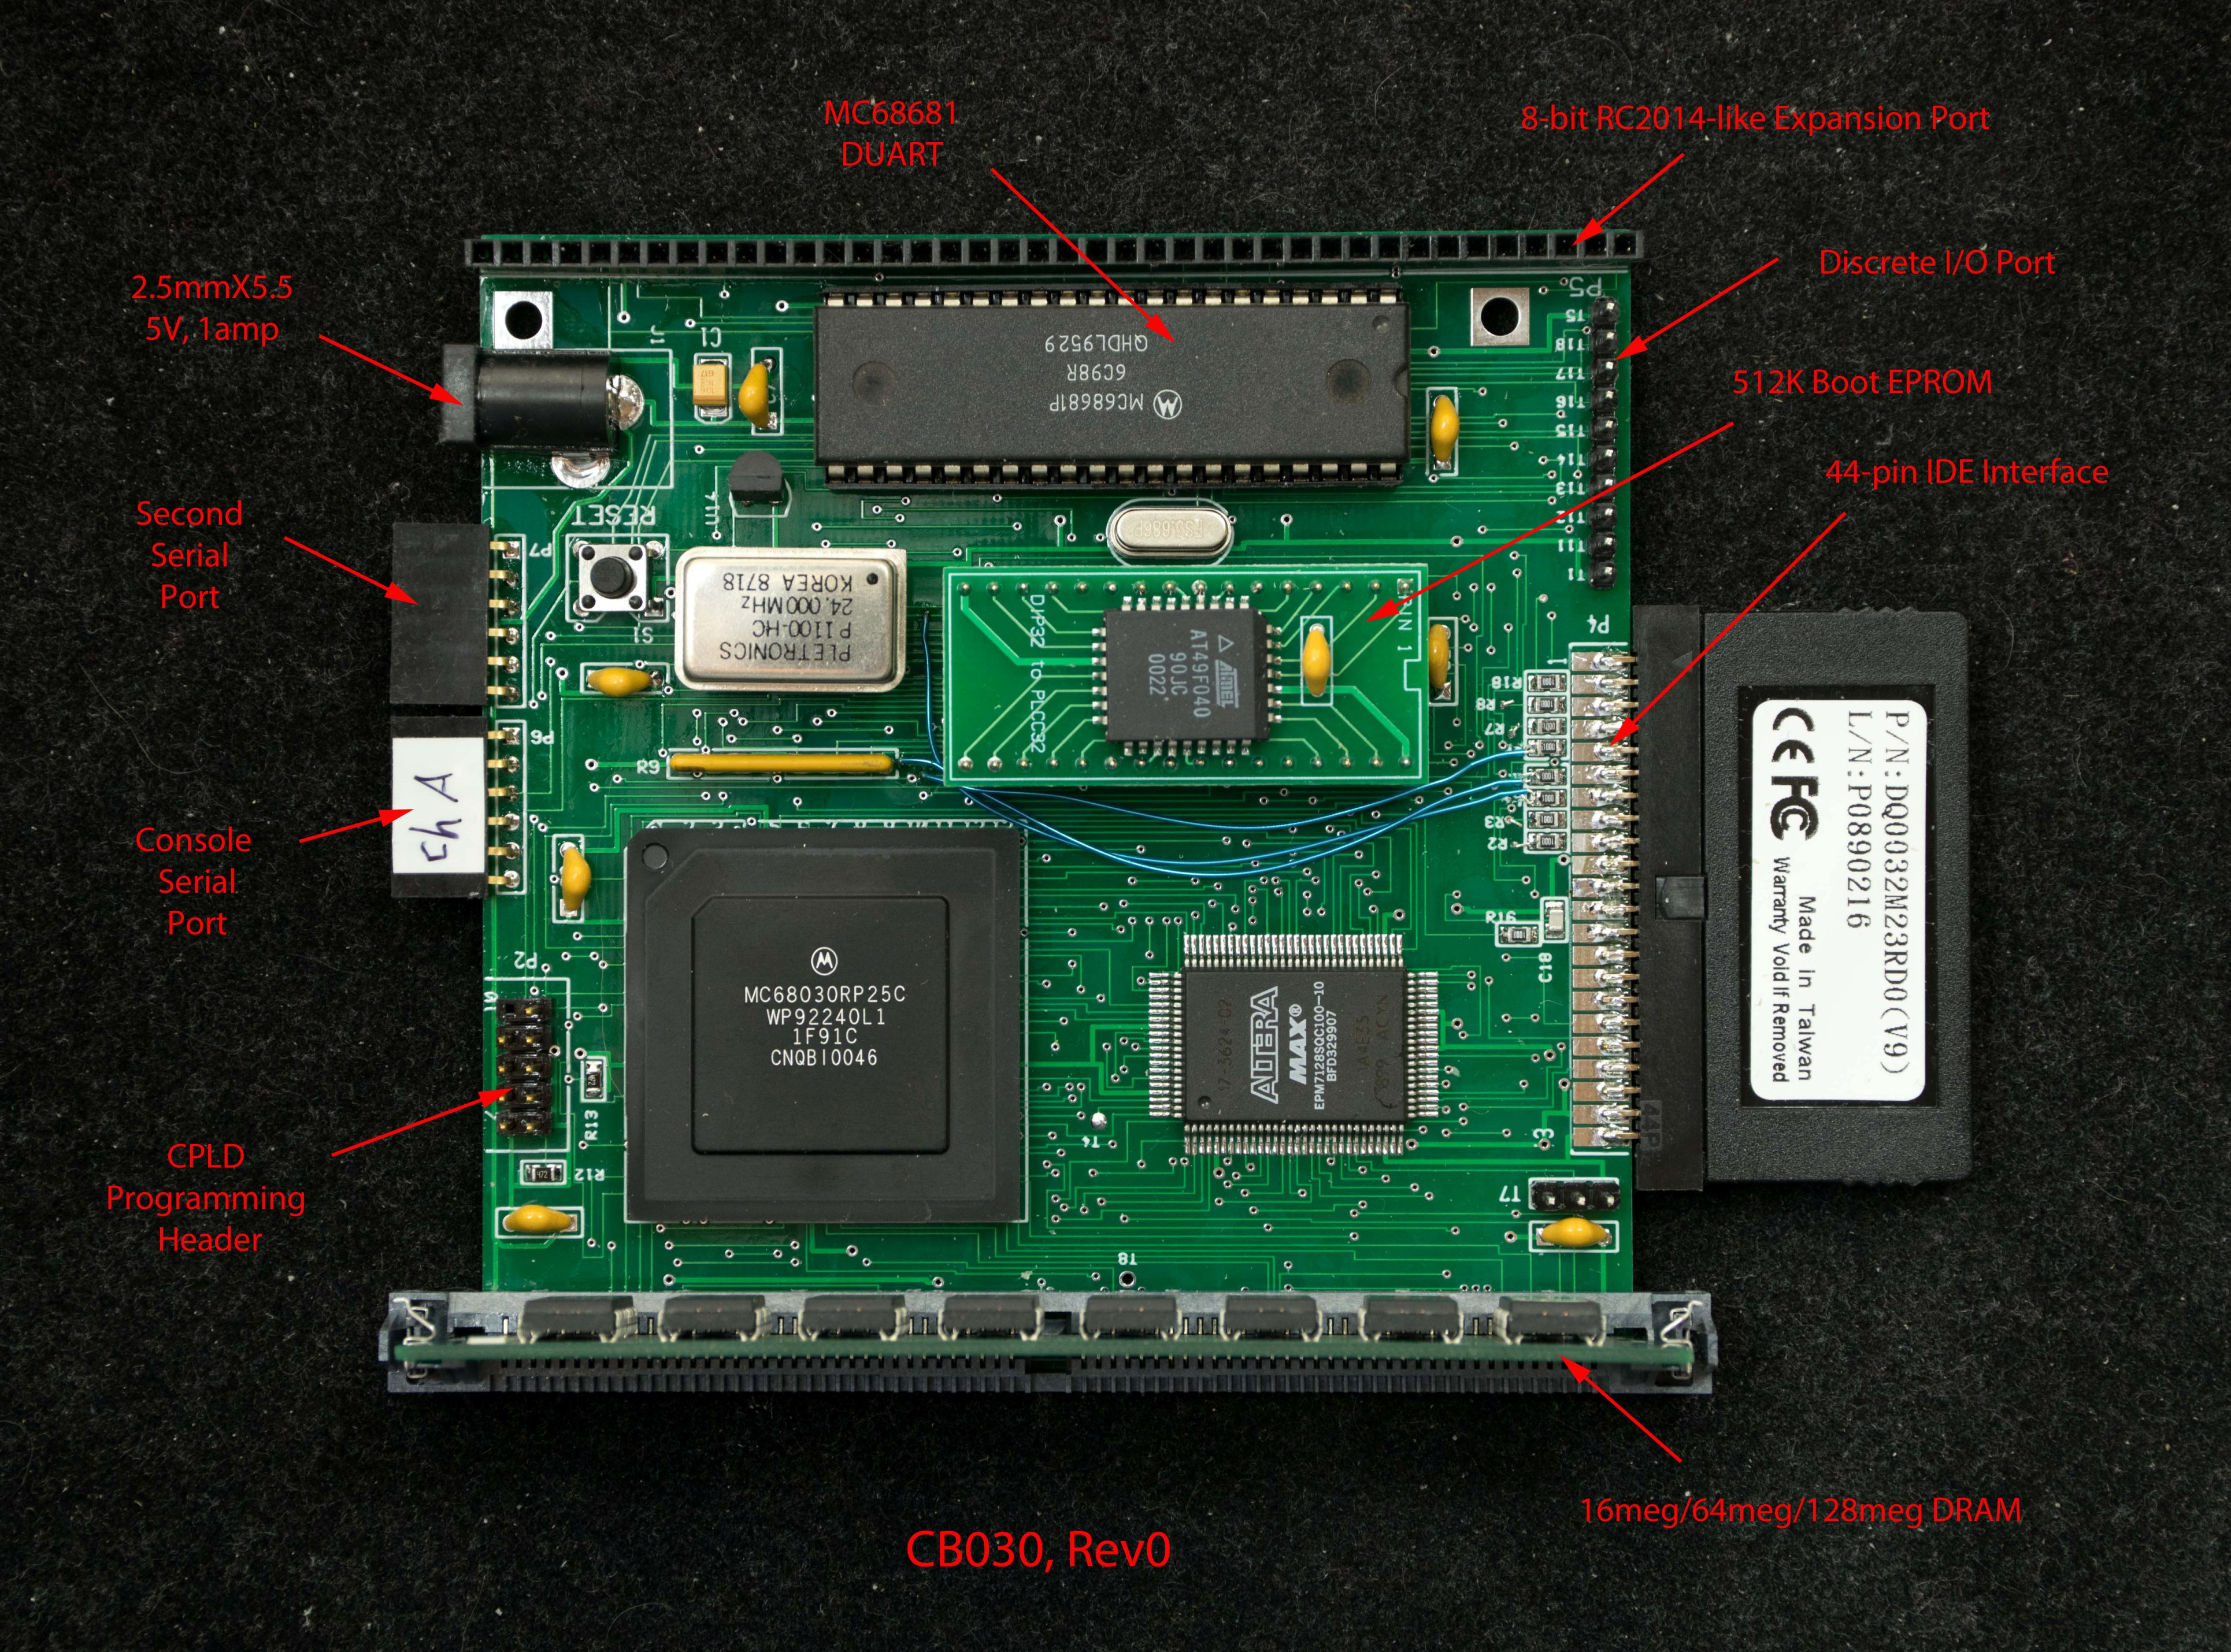 www.retrobrewcomputers.org_lib_plugins_ckgedit_fckeditor_userfiles_image_builderpages_plasmo_tiny030_cb030_cb030_r0_annotated_f.jpg